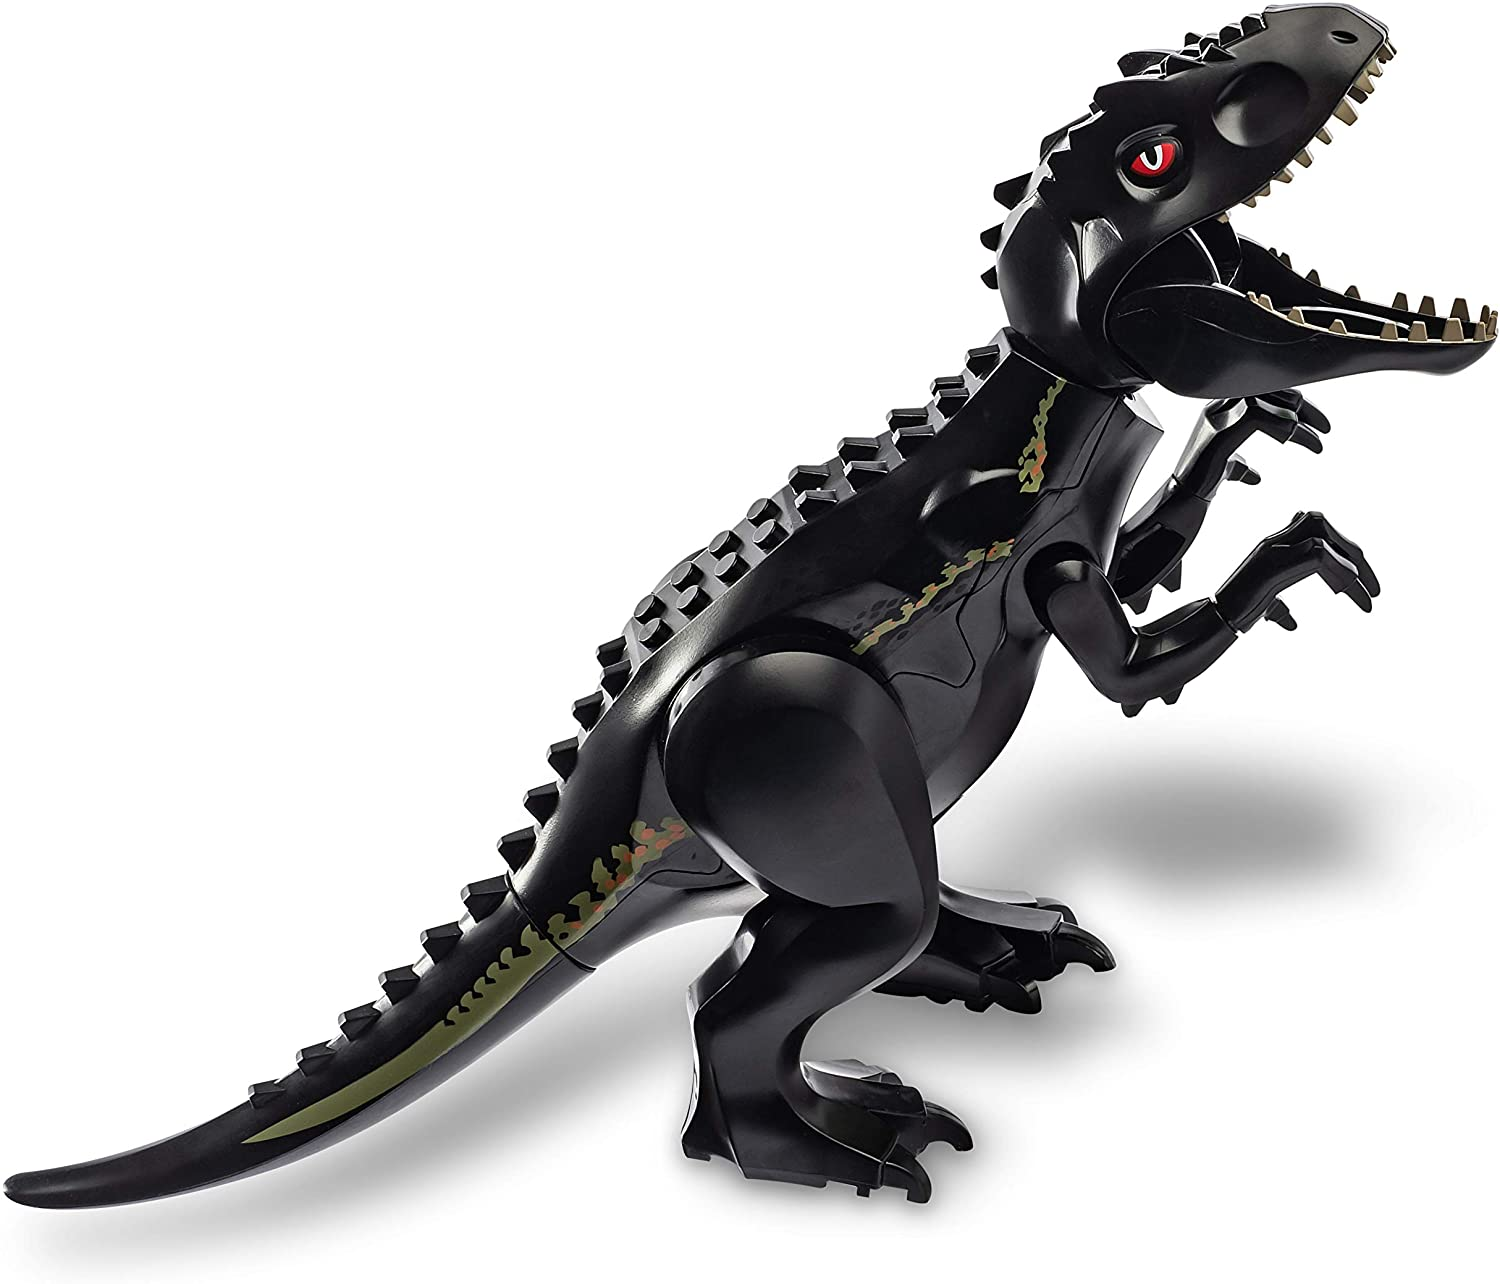 Baryonyx Indominus Rex LTCtoy 10pcs Dinos Toy Included 2 Large Size Buildable Dinosaur Building Block Figures with Movable Jaws